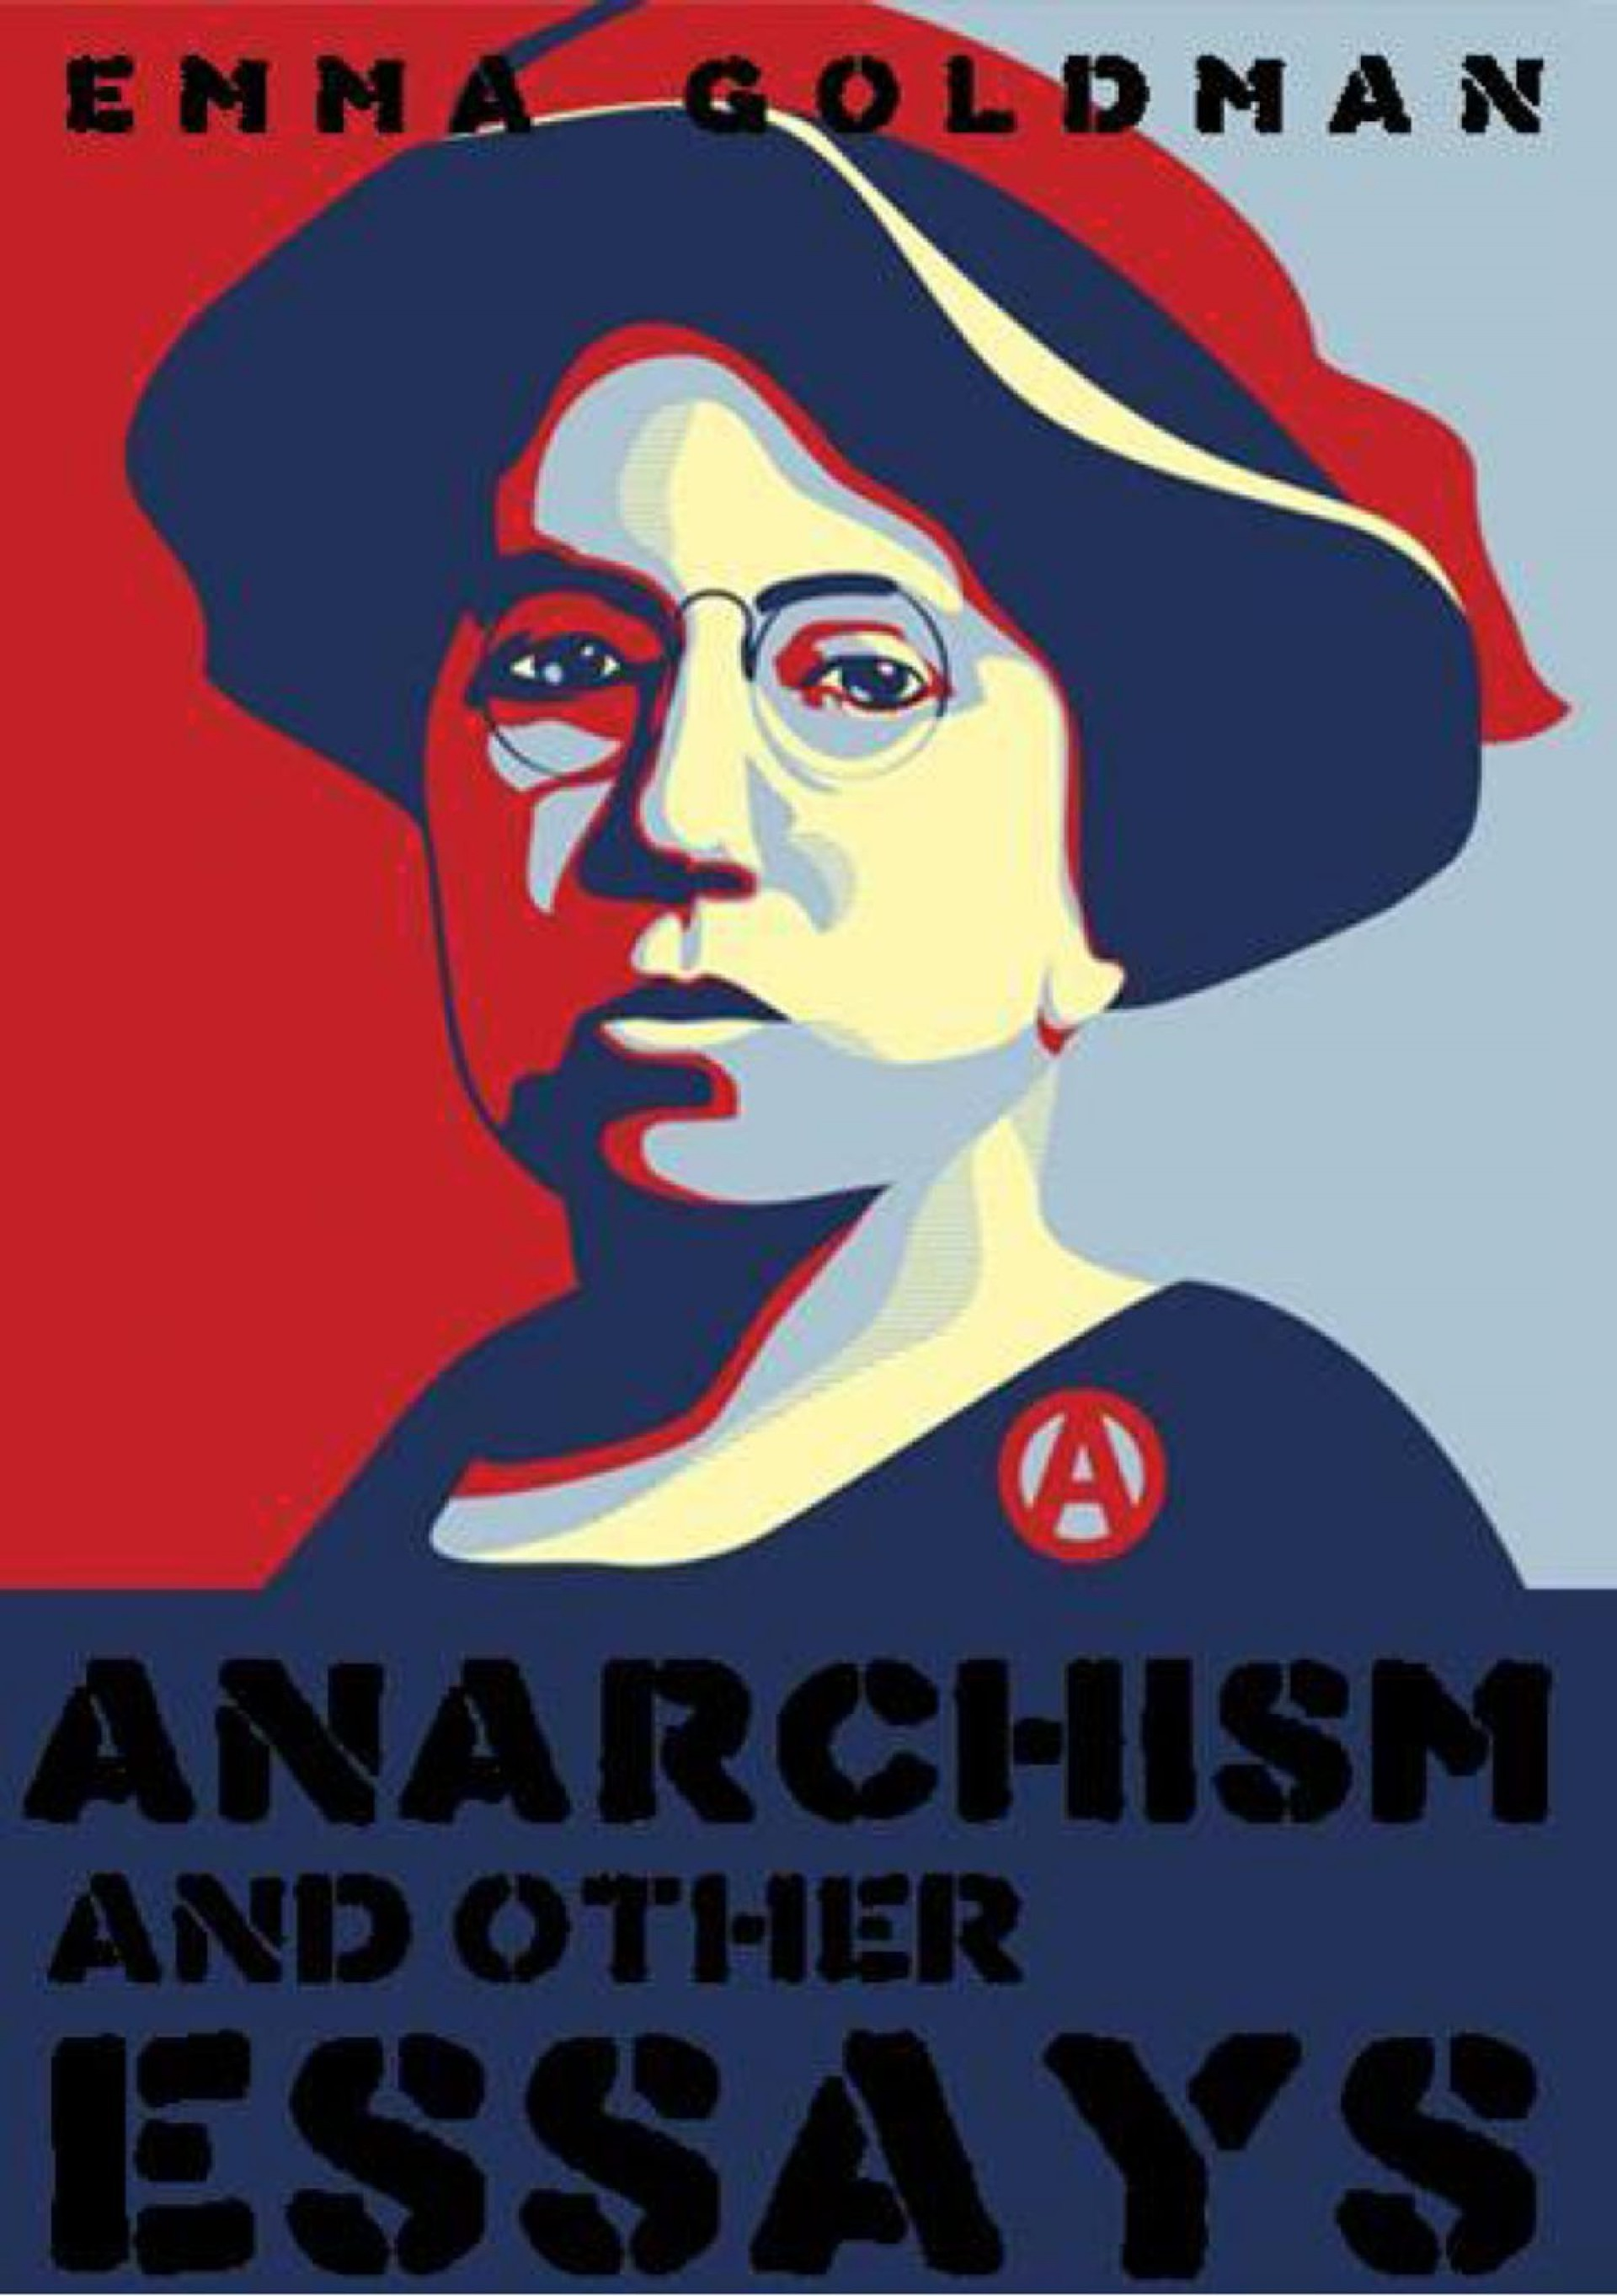 002 Essay Example Anarchism And Other Essays Incredible Emma Goldman Summary Mla Citation 1920